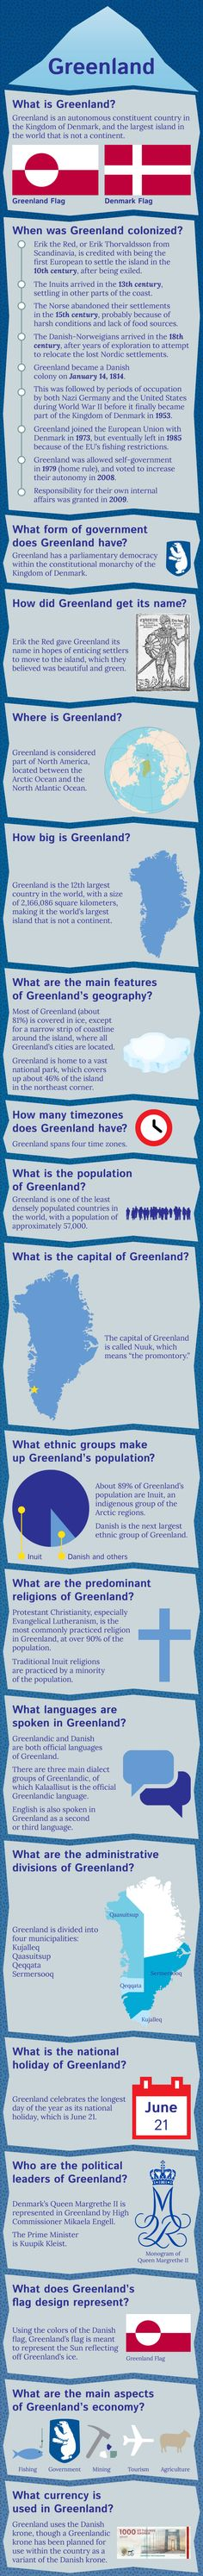 Infographic of  #Greenland Fast Factshttp://www.mapsofworld.com/pages/fast-facts/infographic-of-greenland-fast-facts/